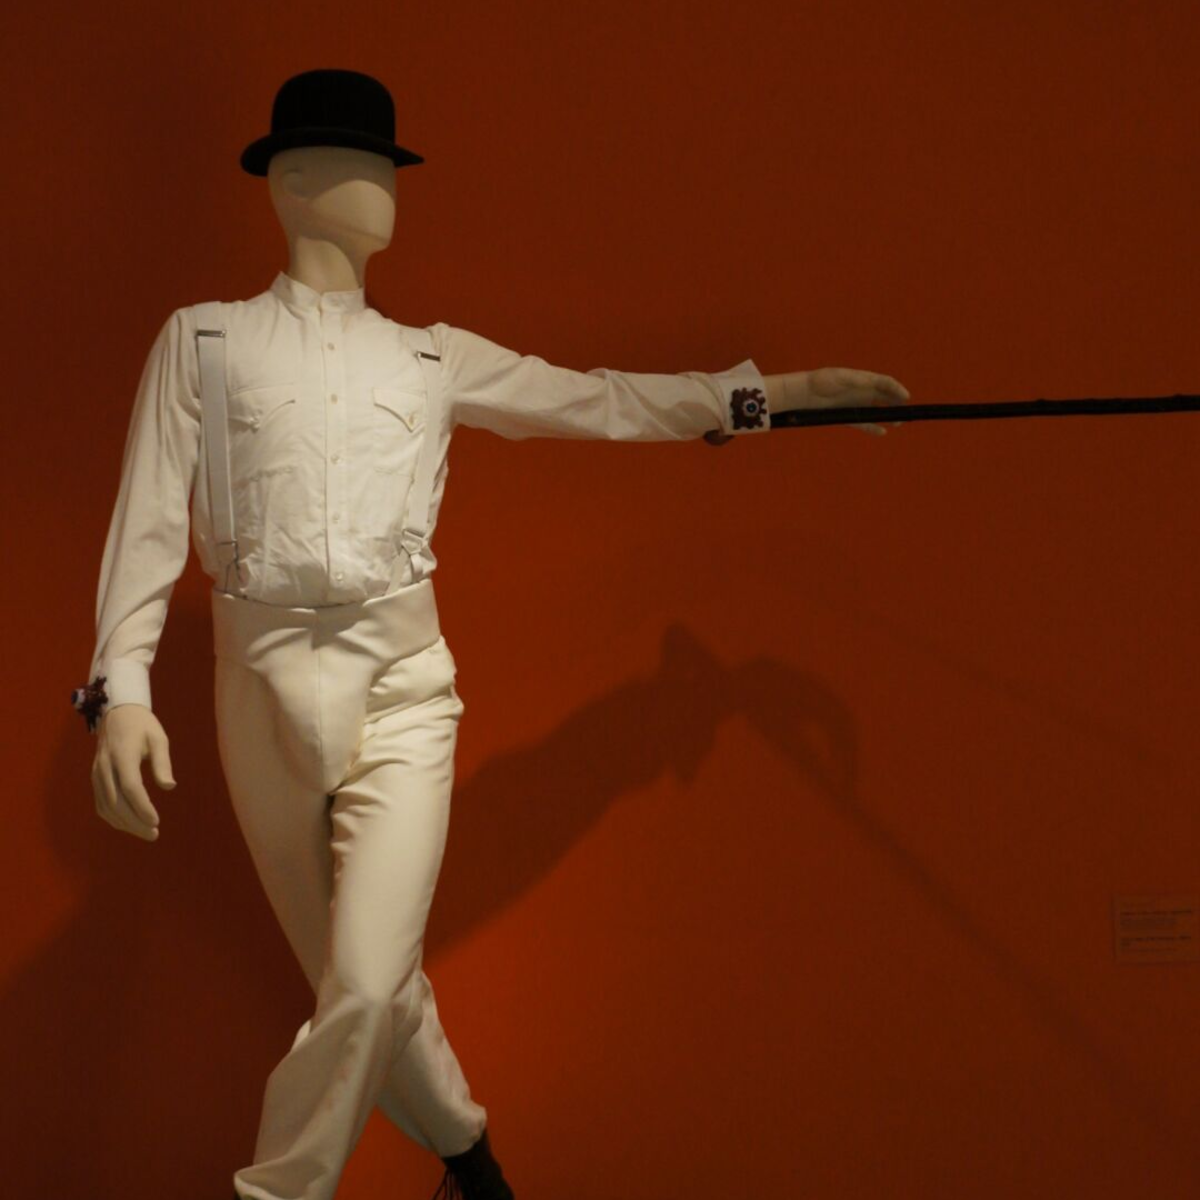 Alex's costume on display for an exhibit at Los Angeles County Museum of Art.